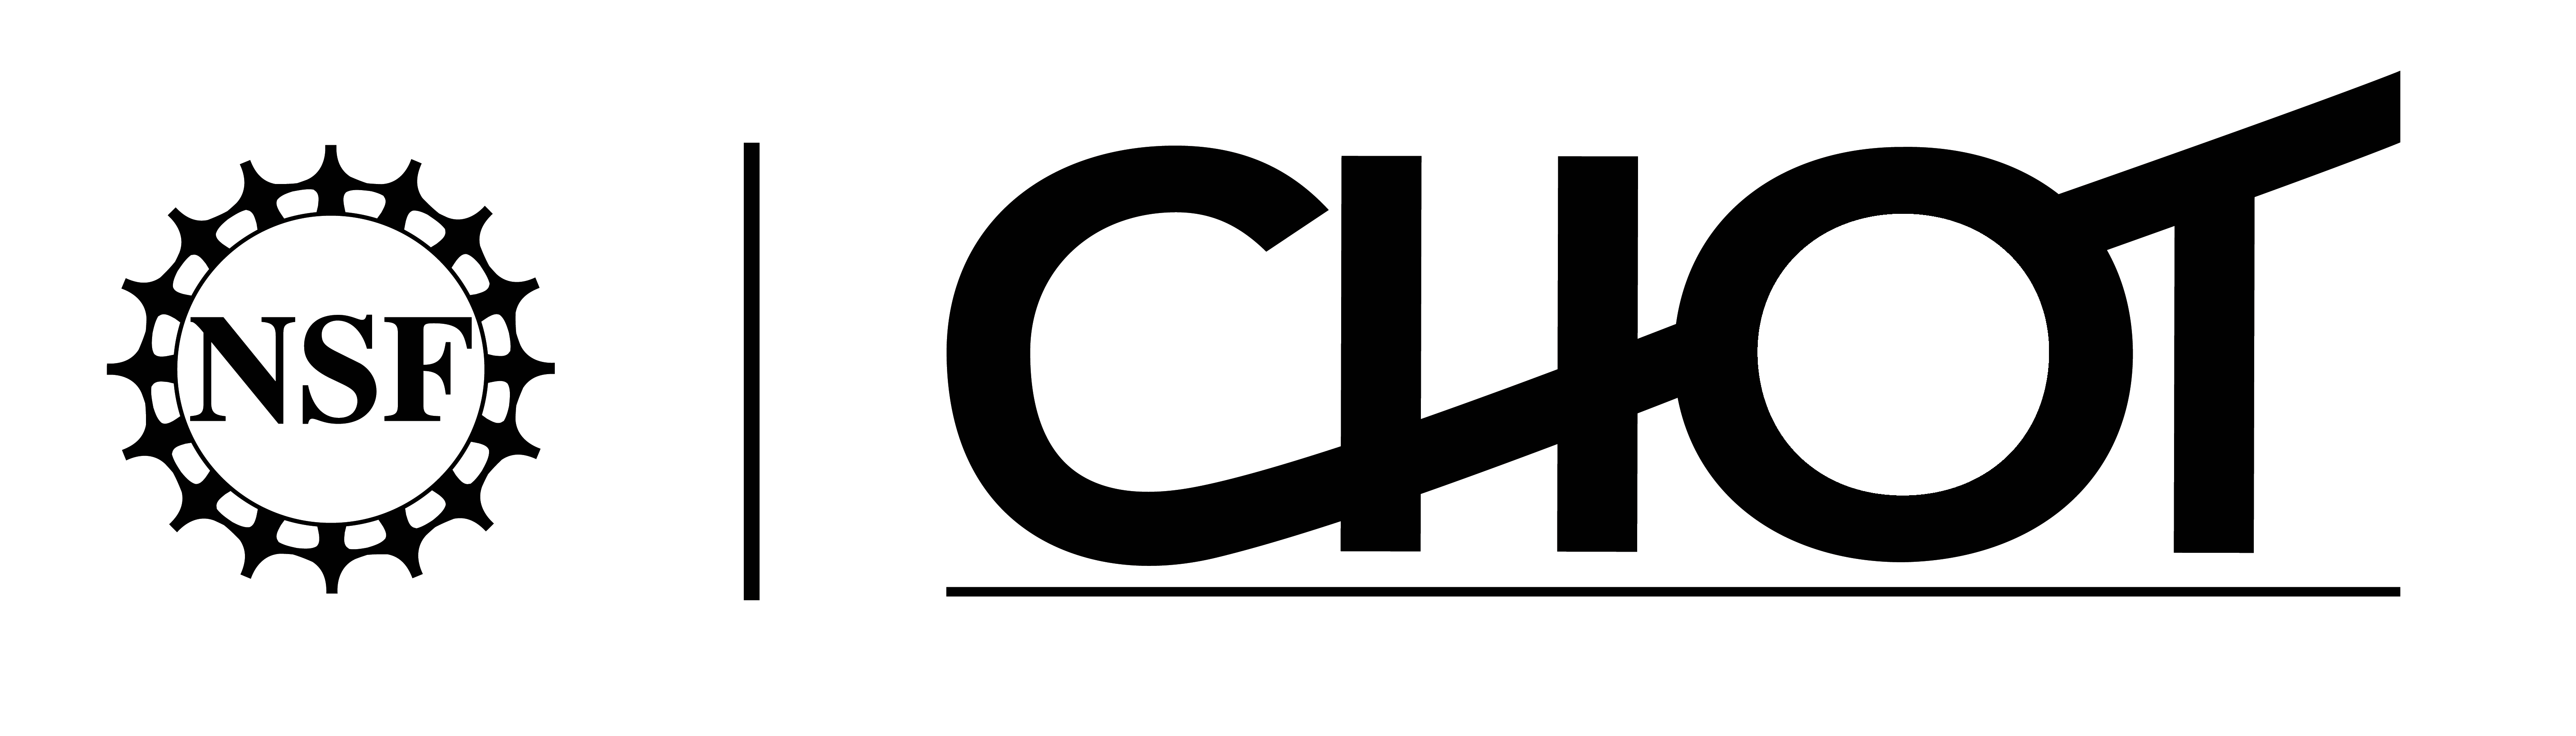 CHOT Logo - Black with Transparent Background